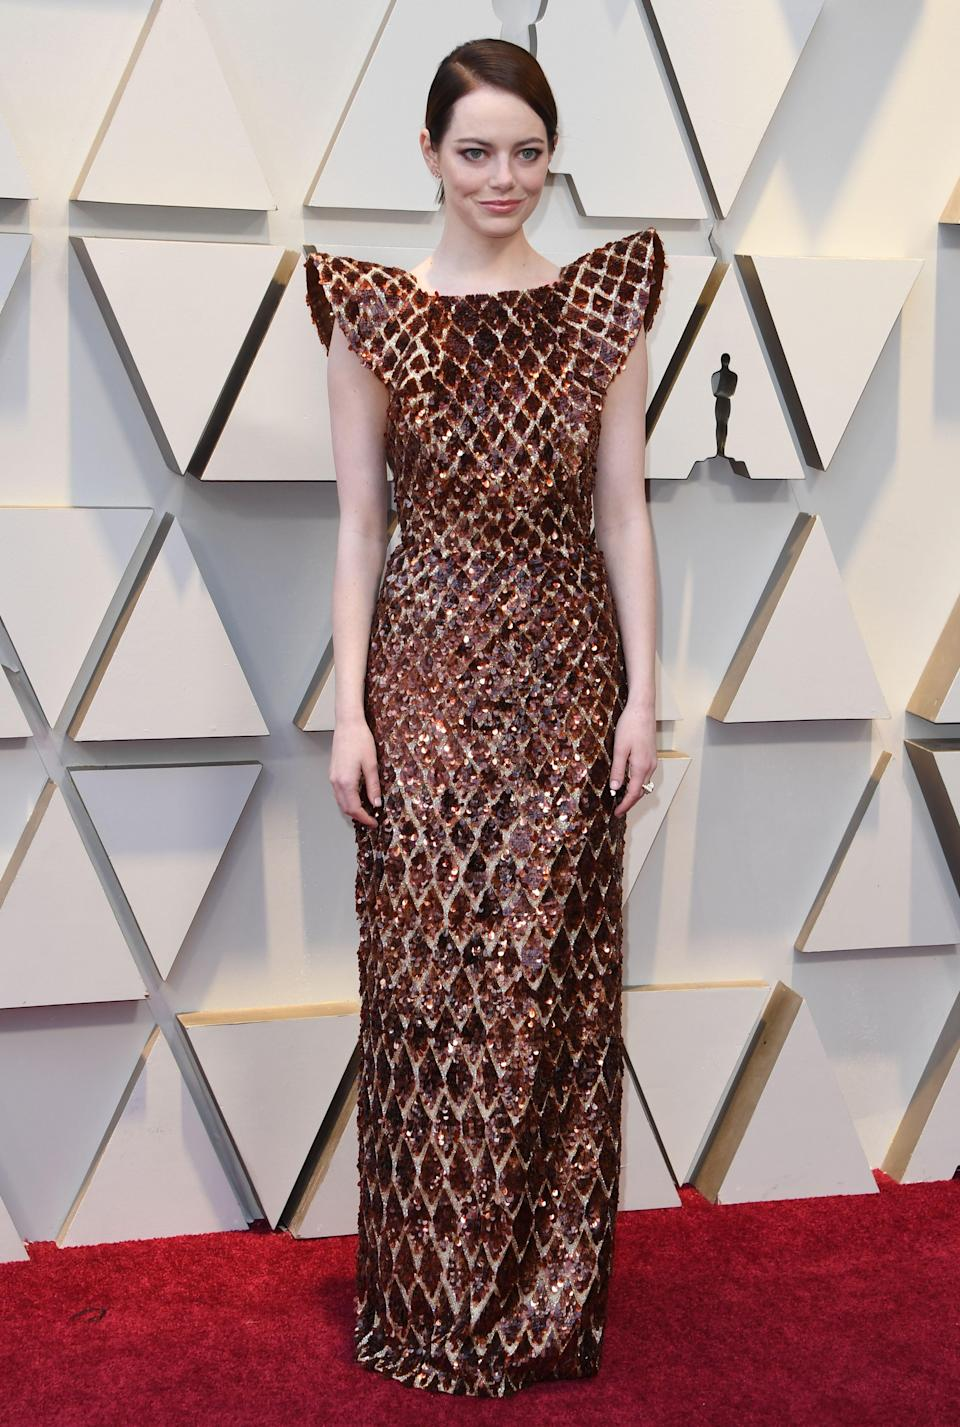 """<p>The Oscar winner and best supporting actress nominee for her role in """"The Favourite"""" wowed in a copper gown by Louis Vuitton. (Image via Getty Images) </p>"""